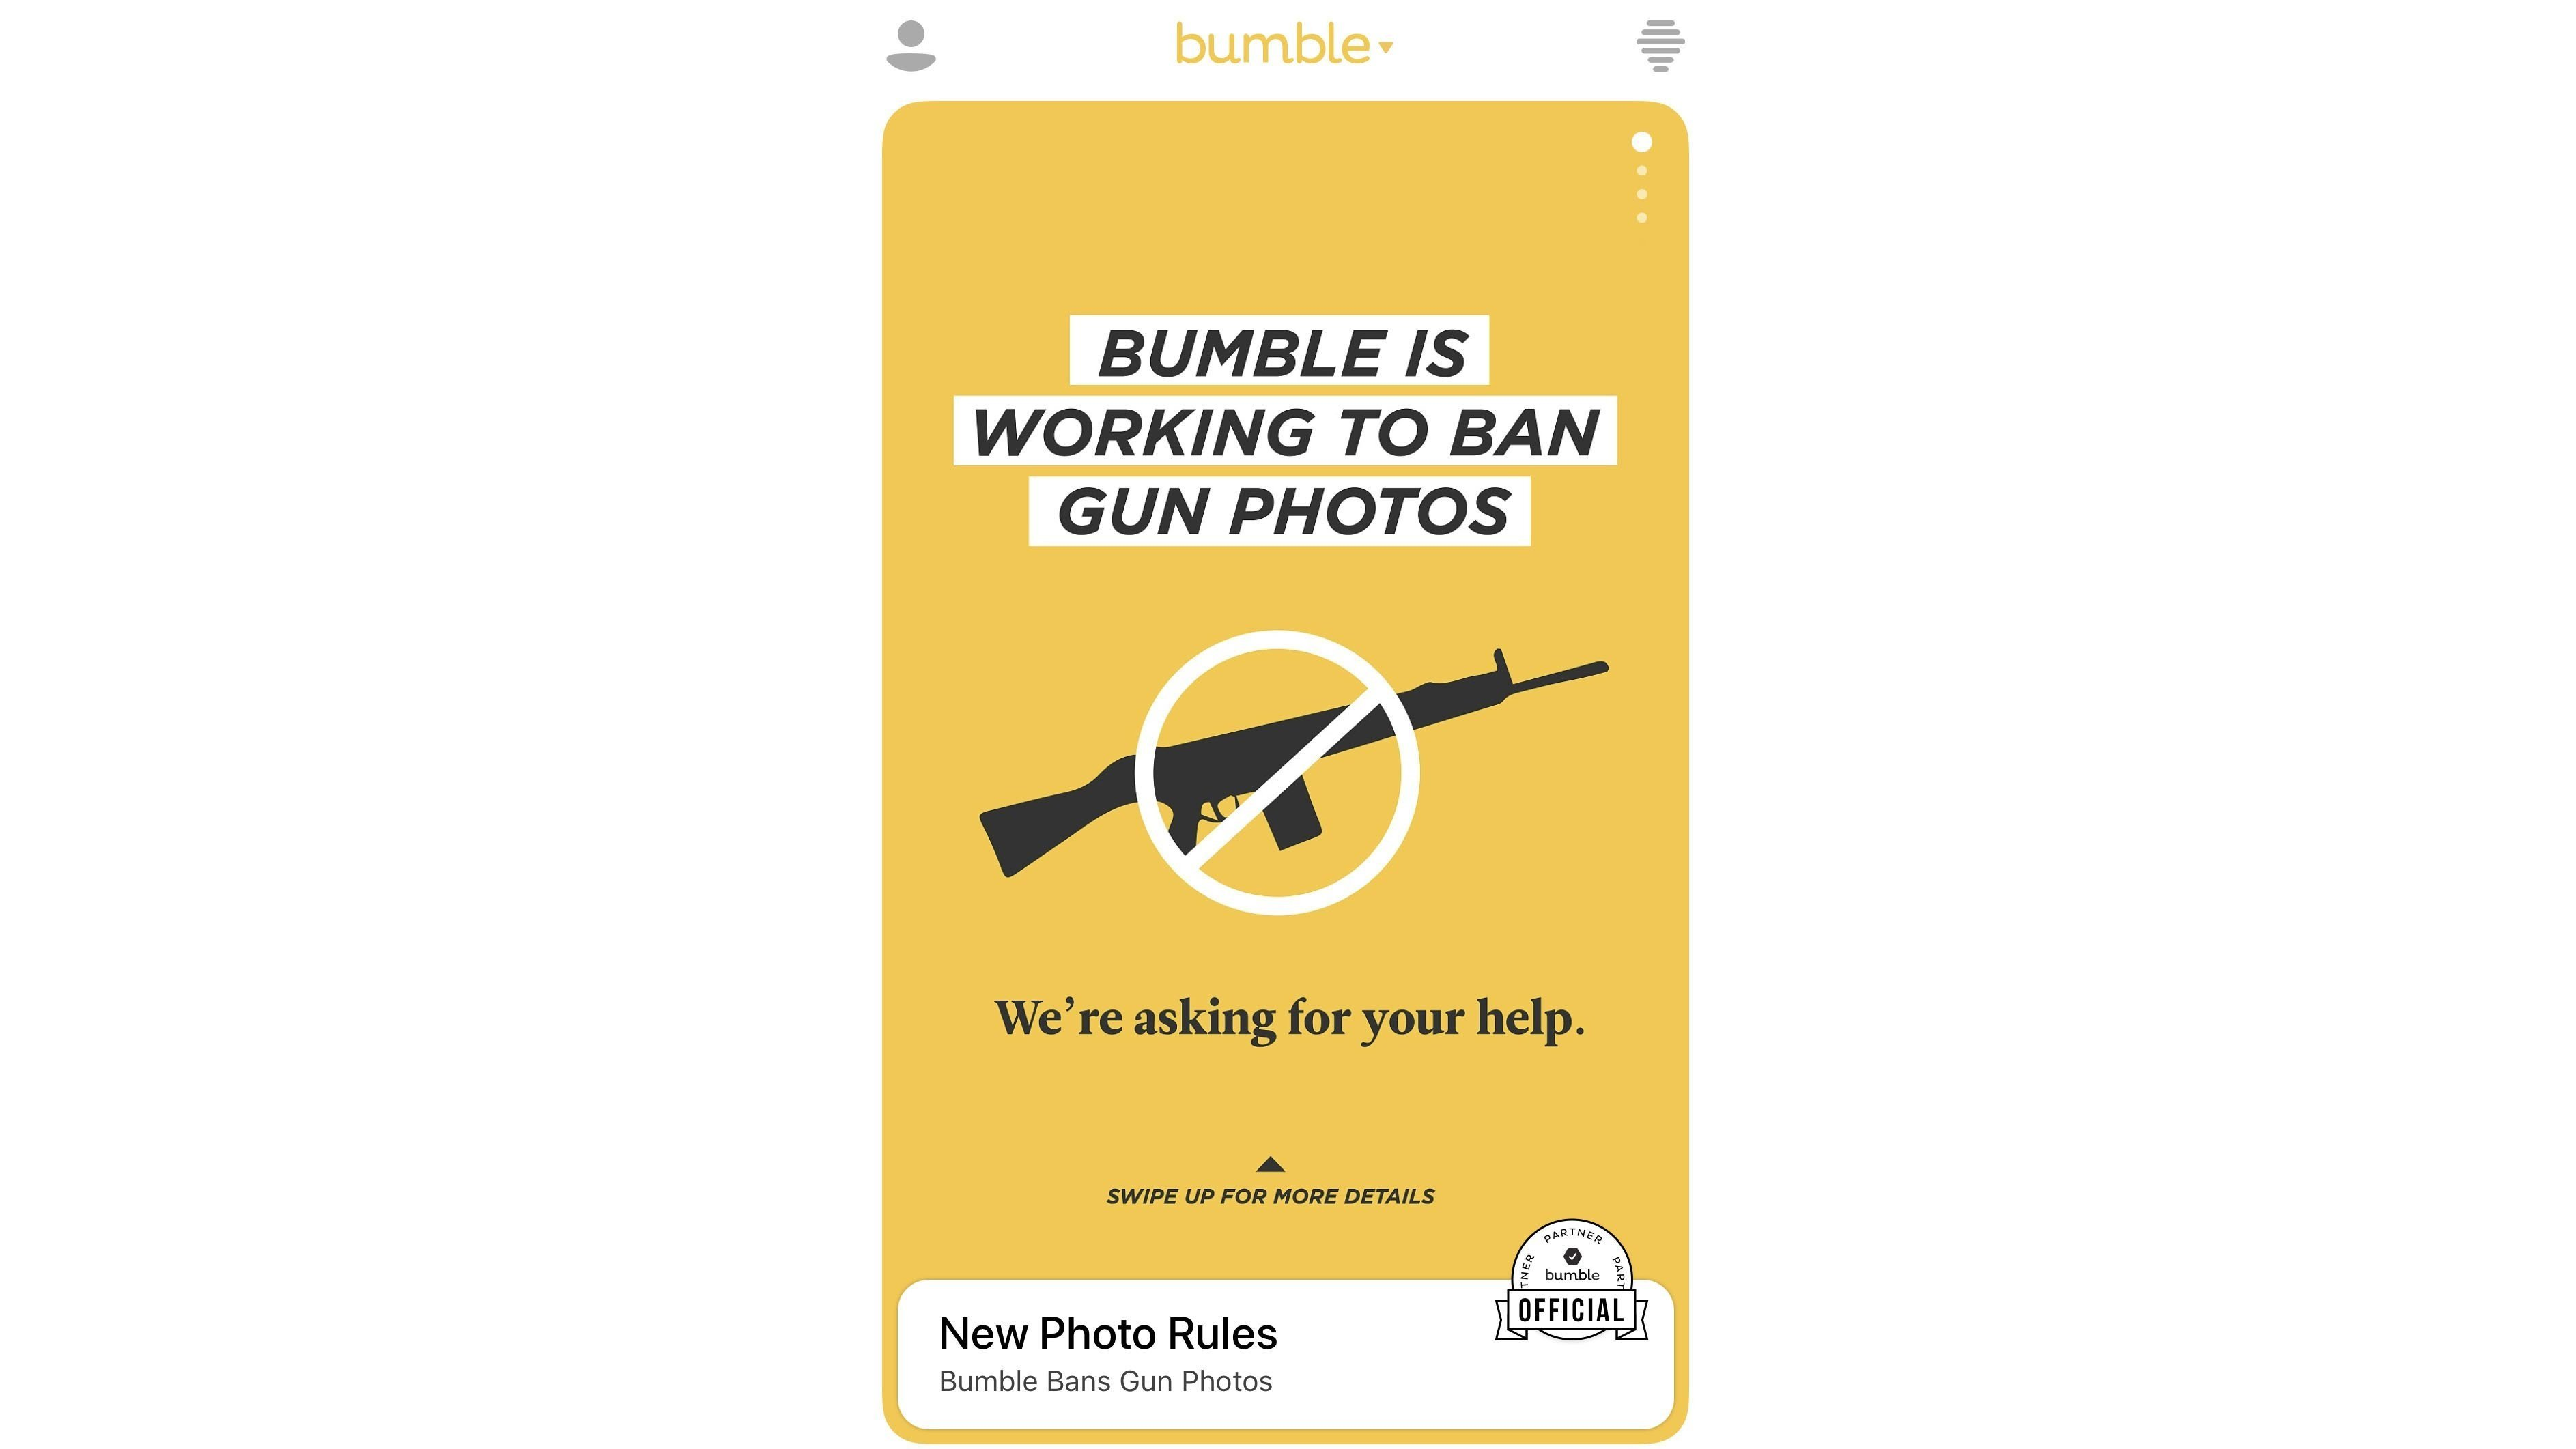 Bumble is banning photos with guns from its platform.